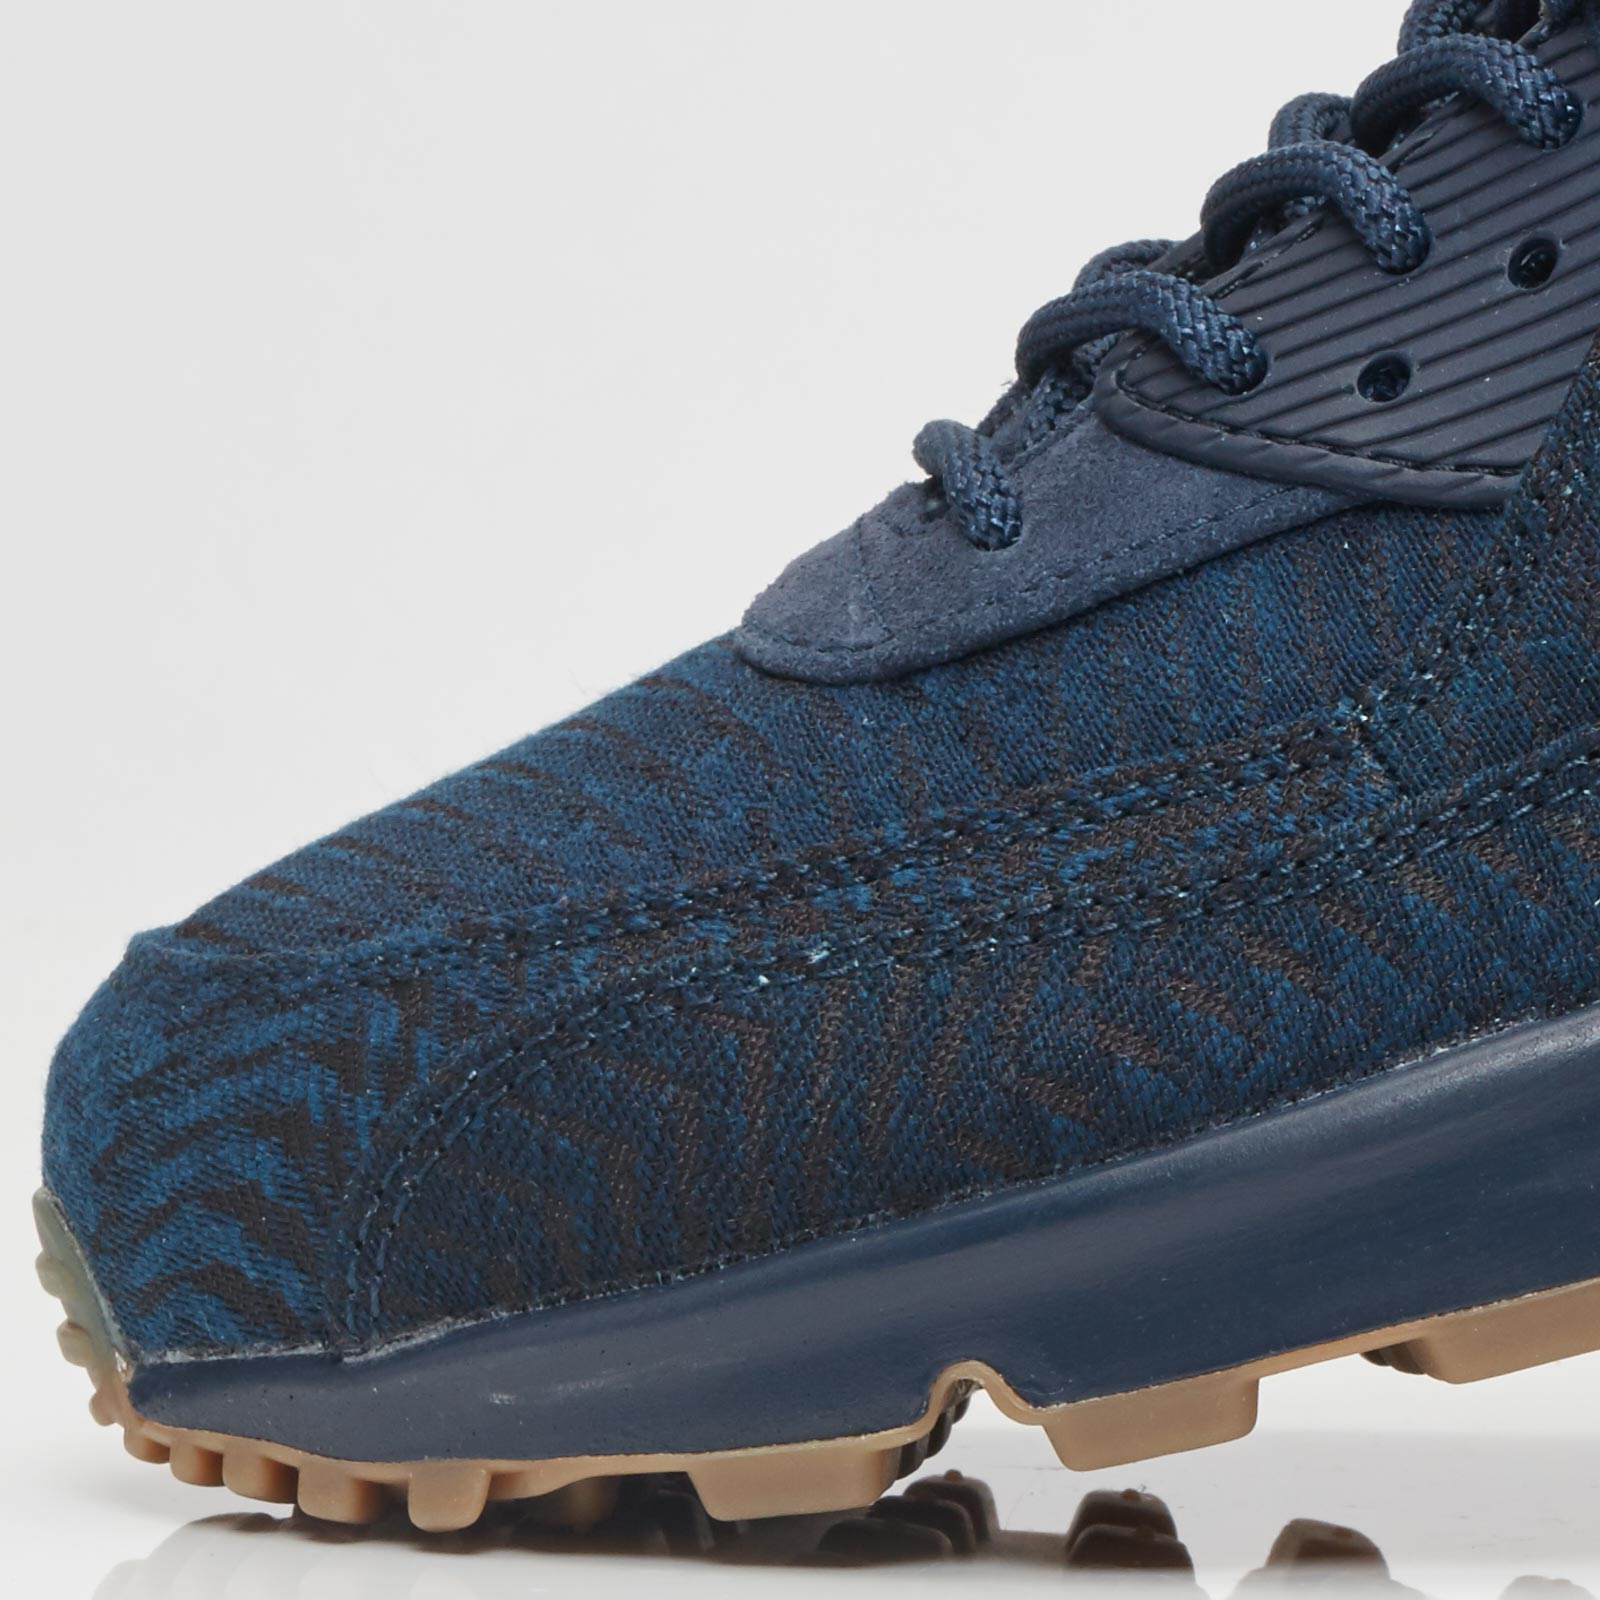 best authentic 971eb d8019 Nike Air Max 90 Premium JCRD - 918358-400 - Sneakersnstuff ...